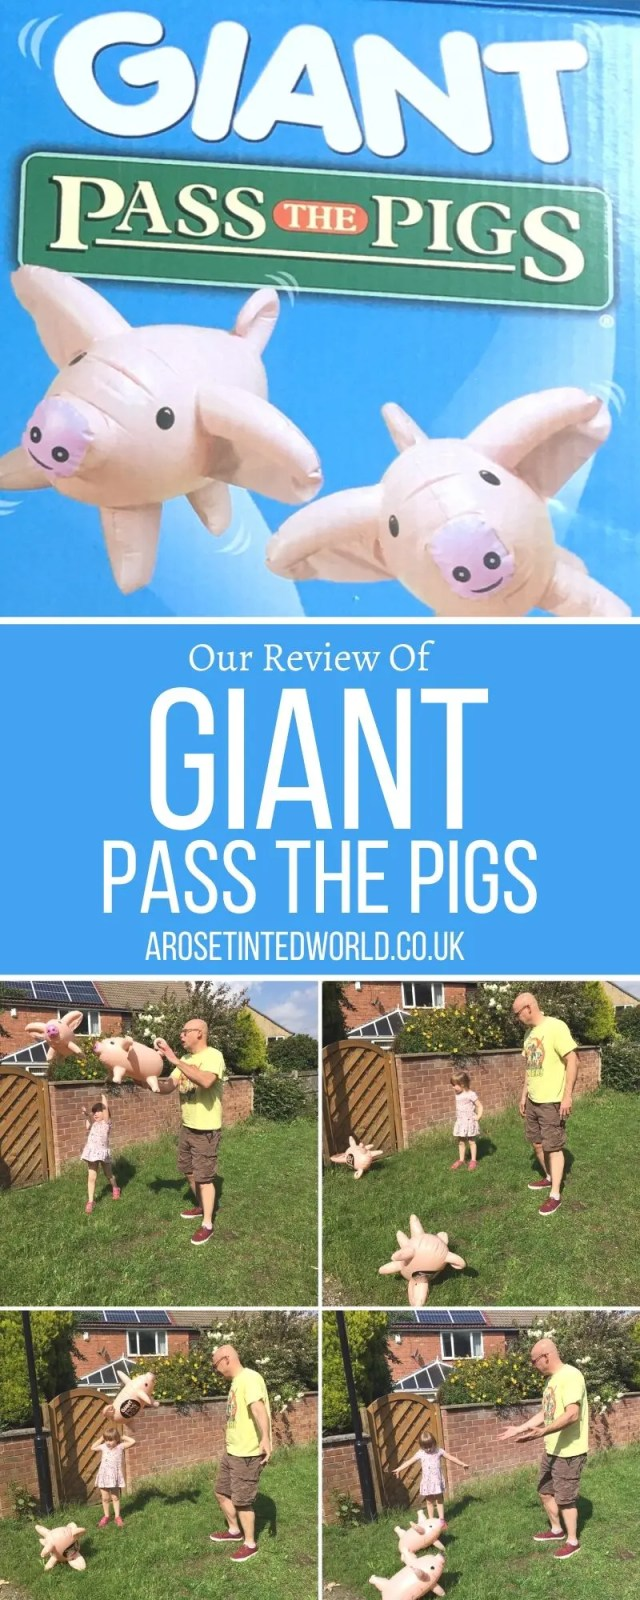 Giant Pass The Pigs - Are you looking for a fun outdoor game that all the family can play? From 4 to 94, this is a hilarious game that everyone will enjoy!